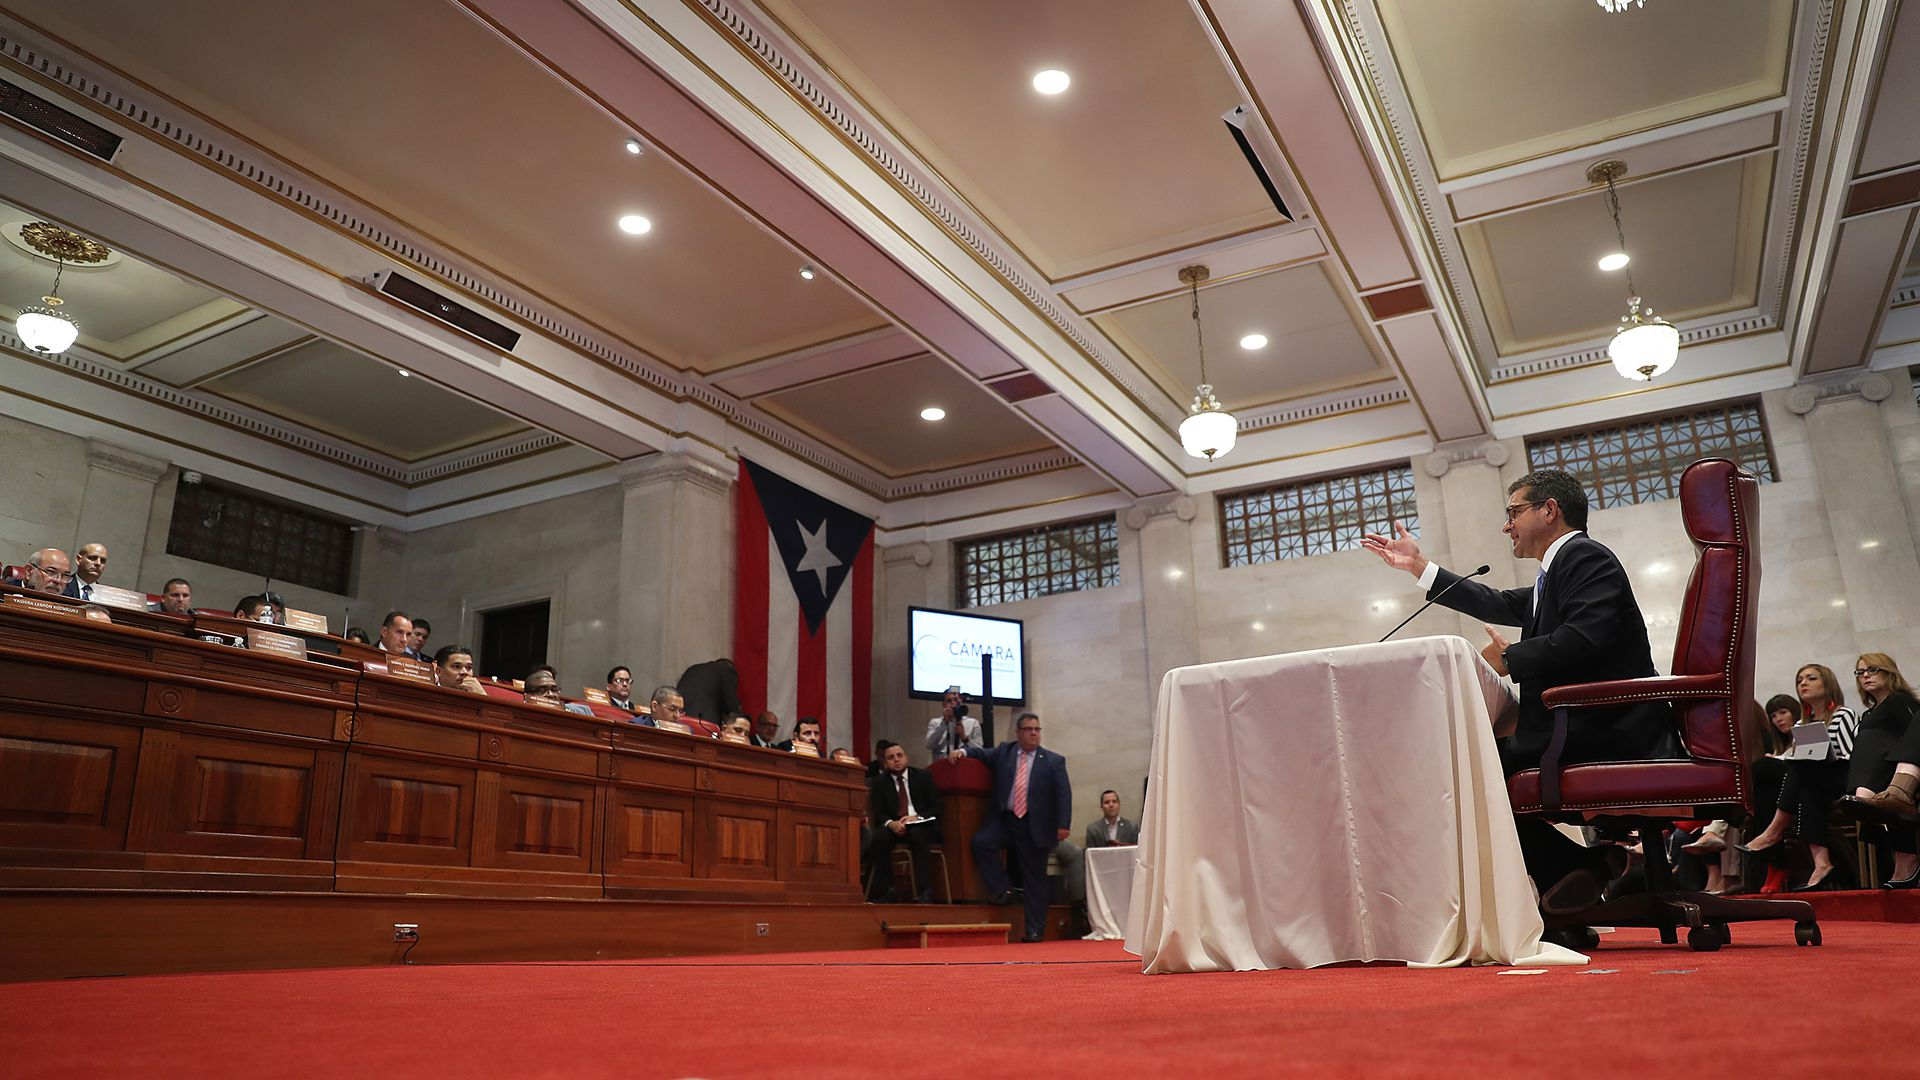 In this image, Pedro sits in the Puerto Rican House of Representatives and speaks to a panel